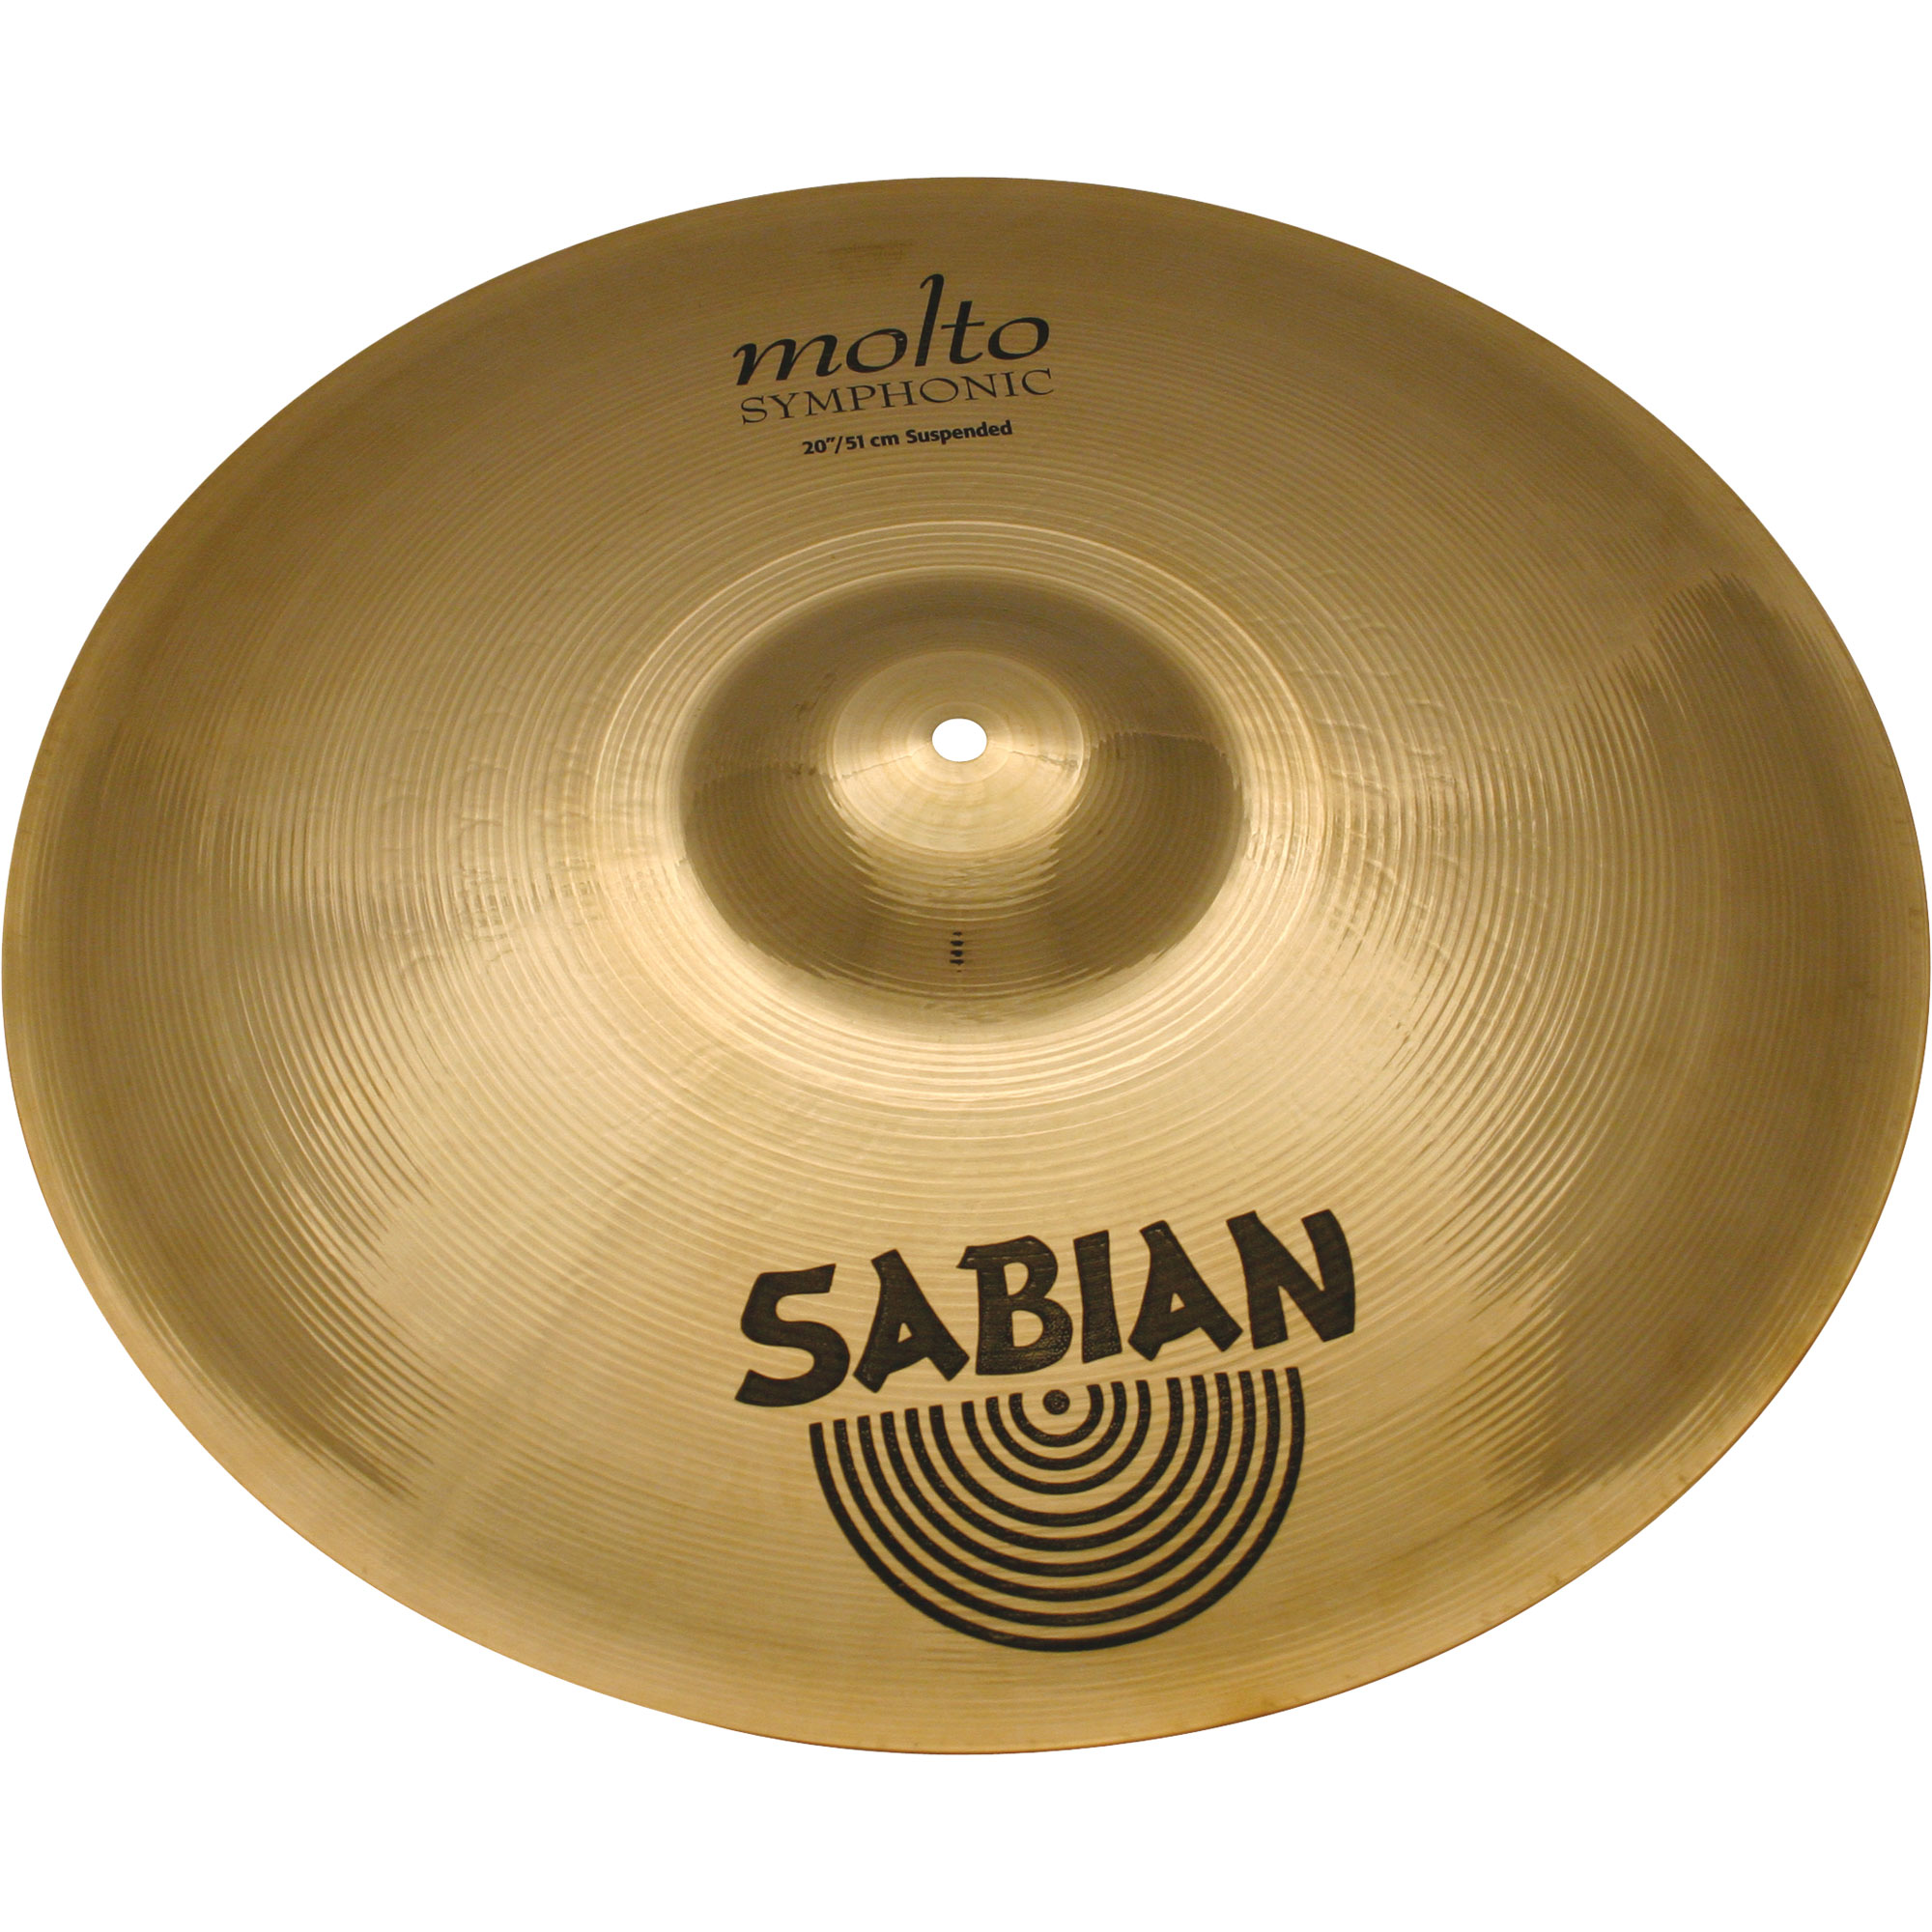 "Sabian 20"" AA Molto Symphonic Suspended Cymbal"